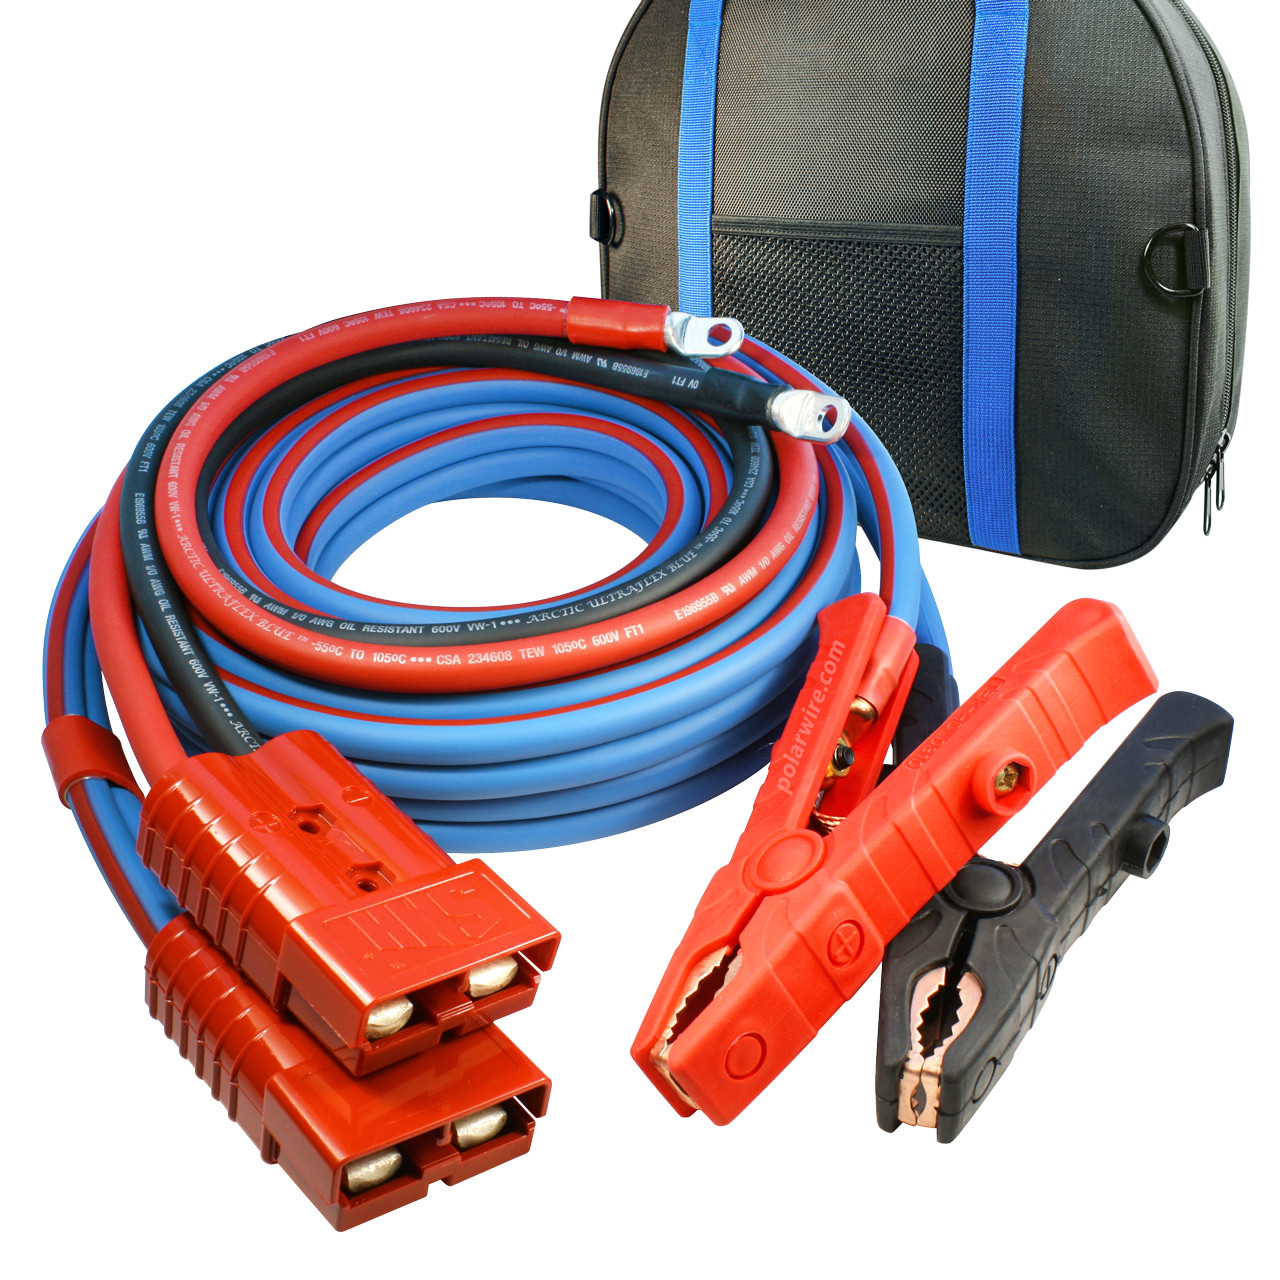 30 cold weather heavy duty jumper cable clamp to harness 1 0 gauge booster [ 1280 x 1280 Pixel ]